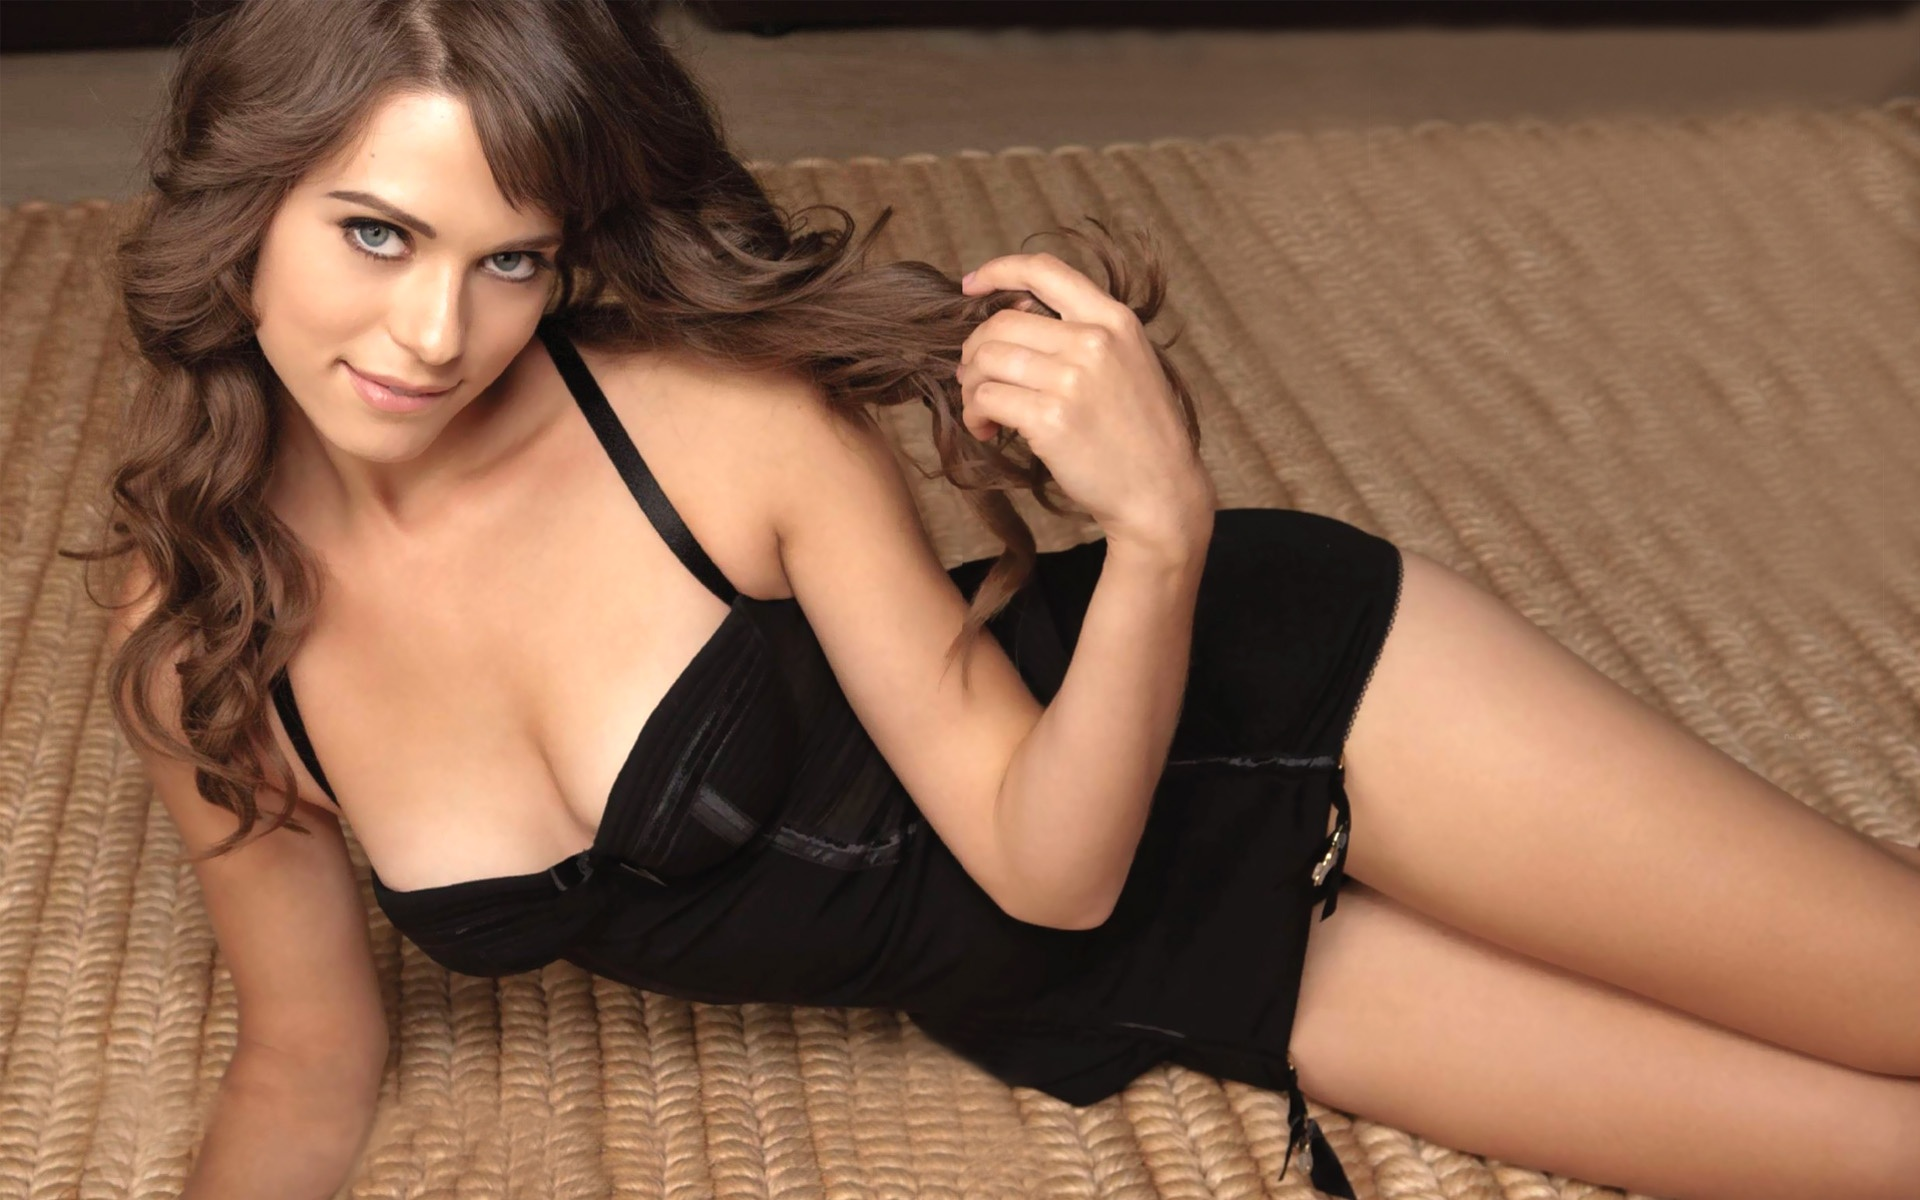 Sexy Lyndsy Fonseca HD wallpapers